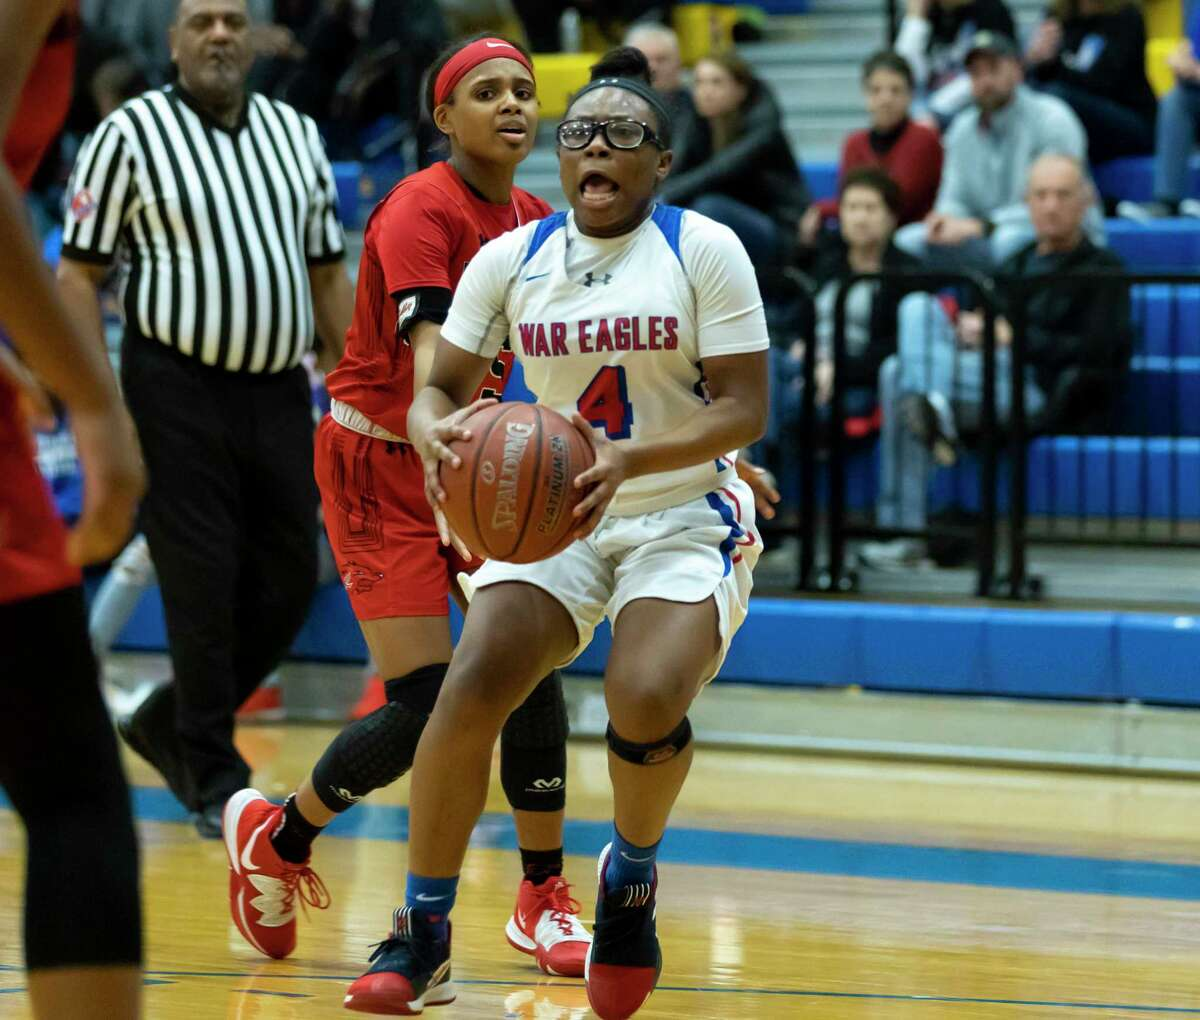 Oak Ridge guard Malade Hollis (4) is expected to move from an off-the-bench to starting role this season.